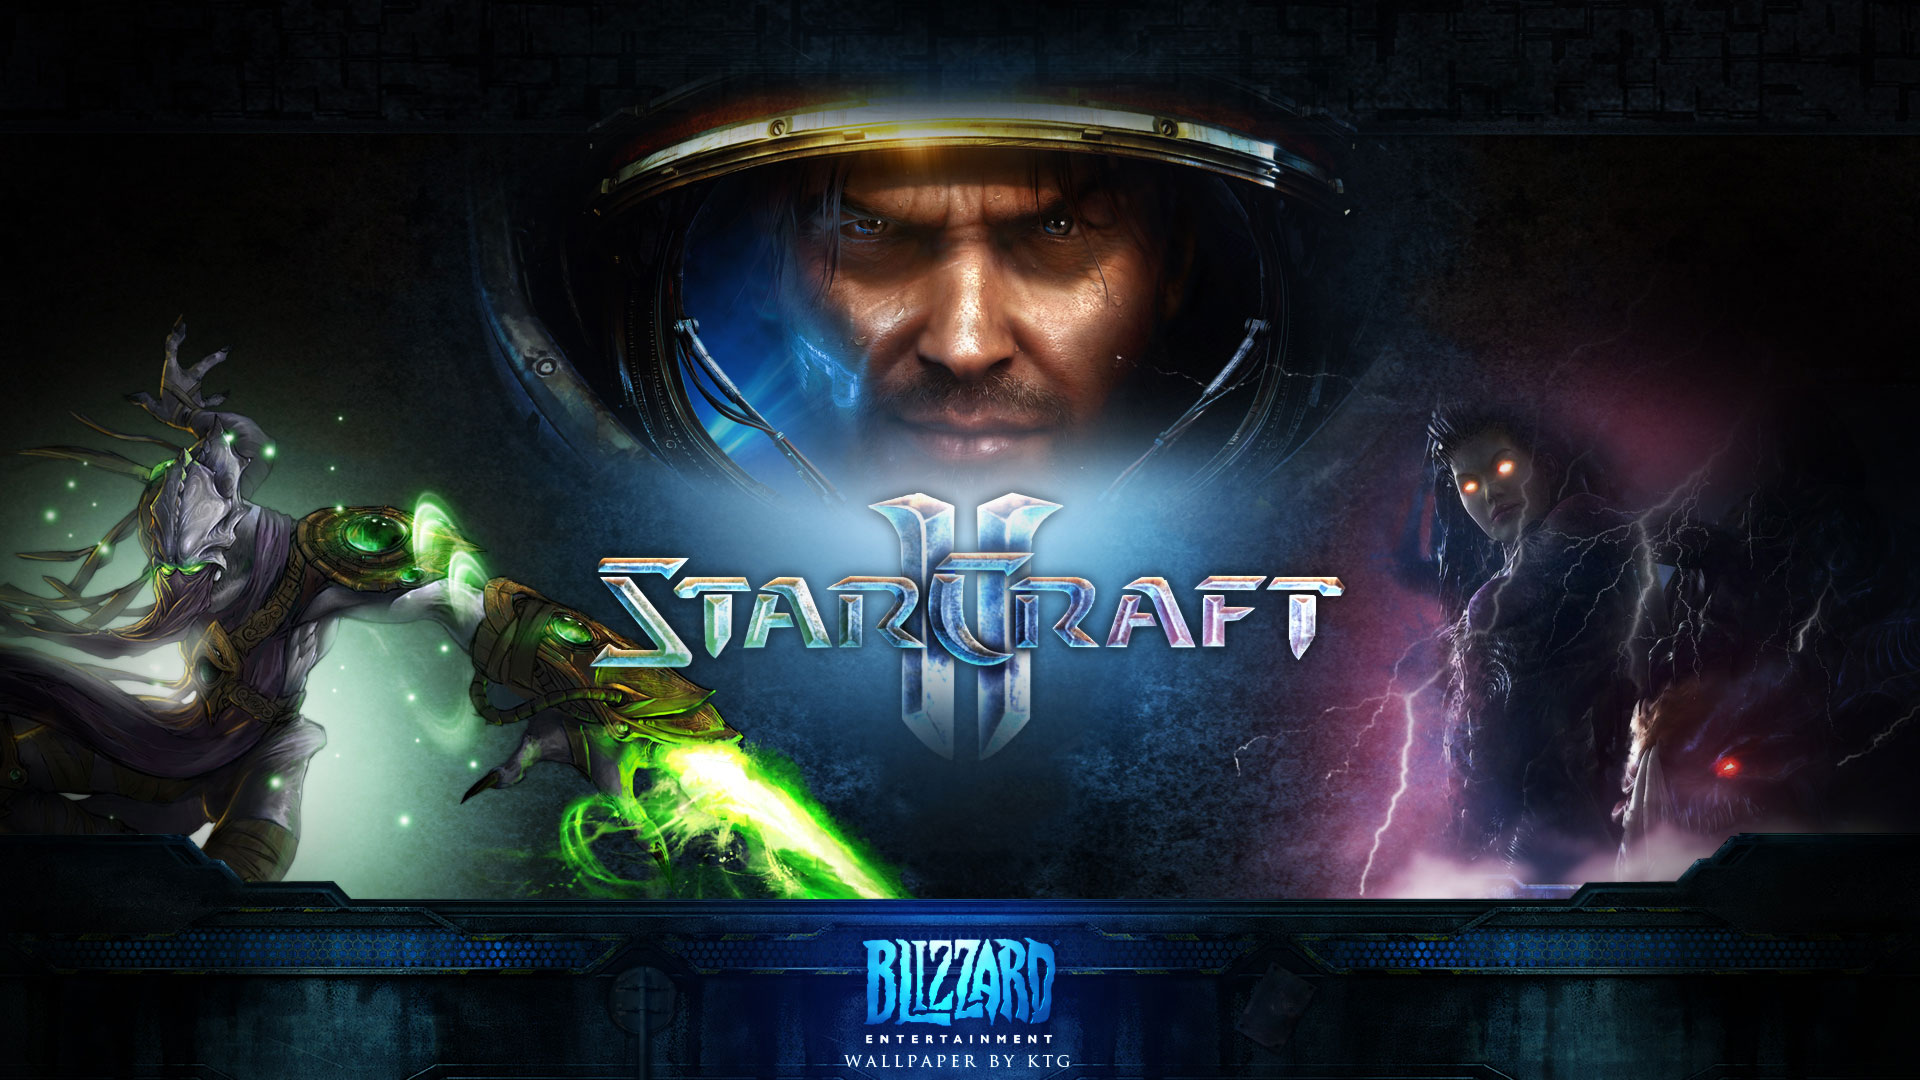 Starcraft 2 Hd Wallpapers